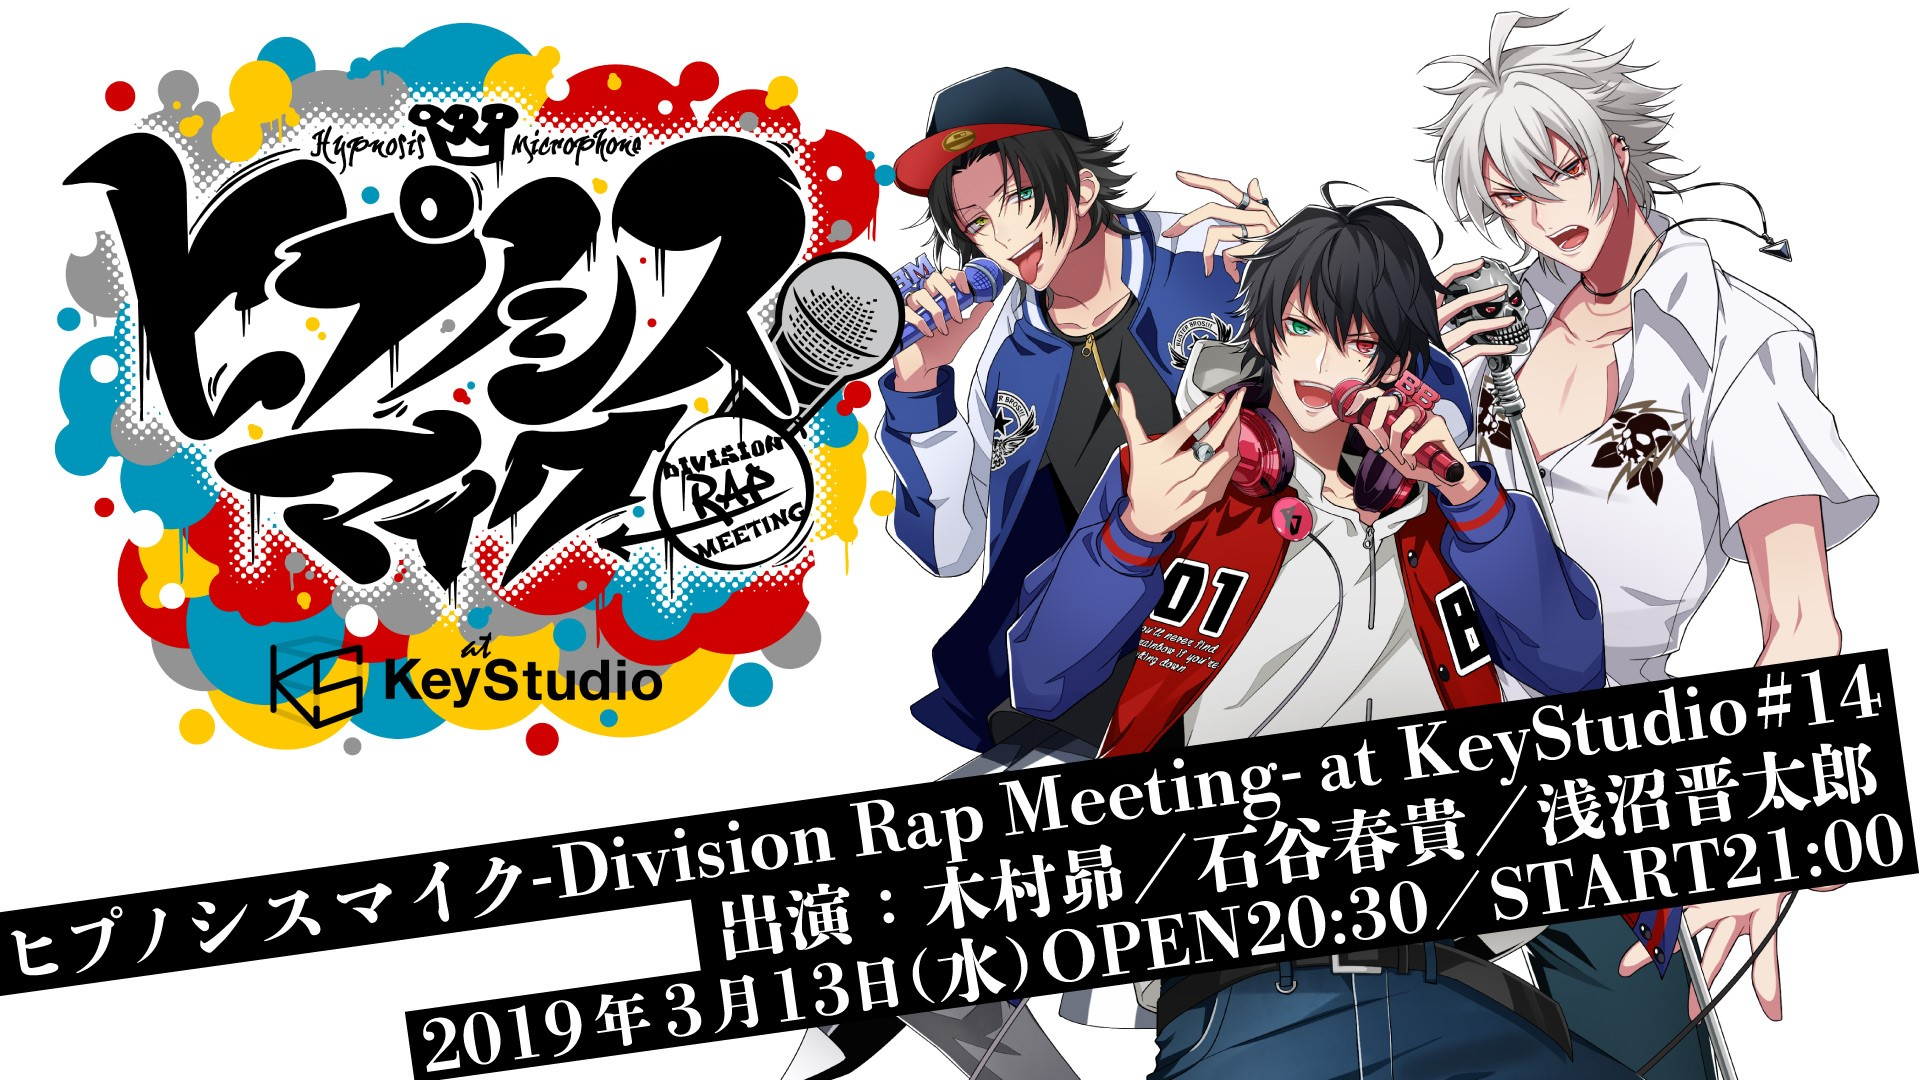 ヒプノシスマイク -Division Rap Meeting- at KeyStudio #14